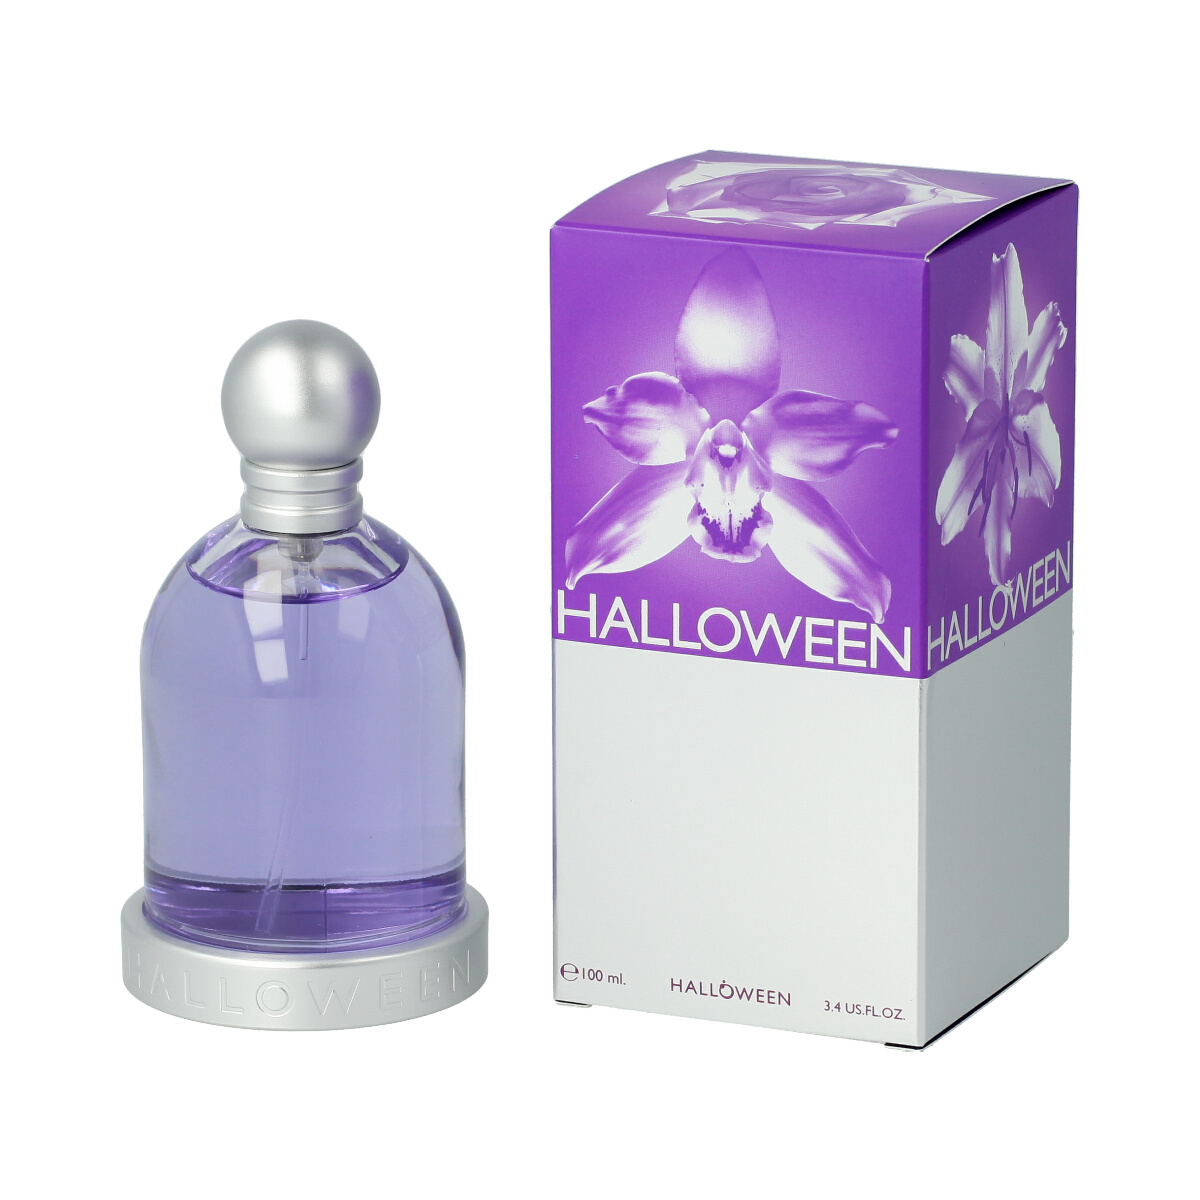 Halloween Halloween Eau De Toilette 100 ml (woman) 15722